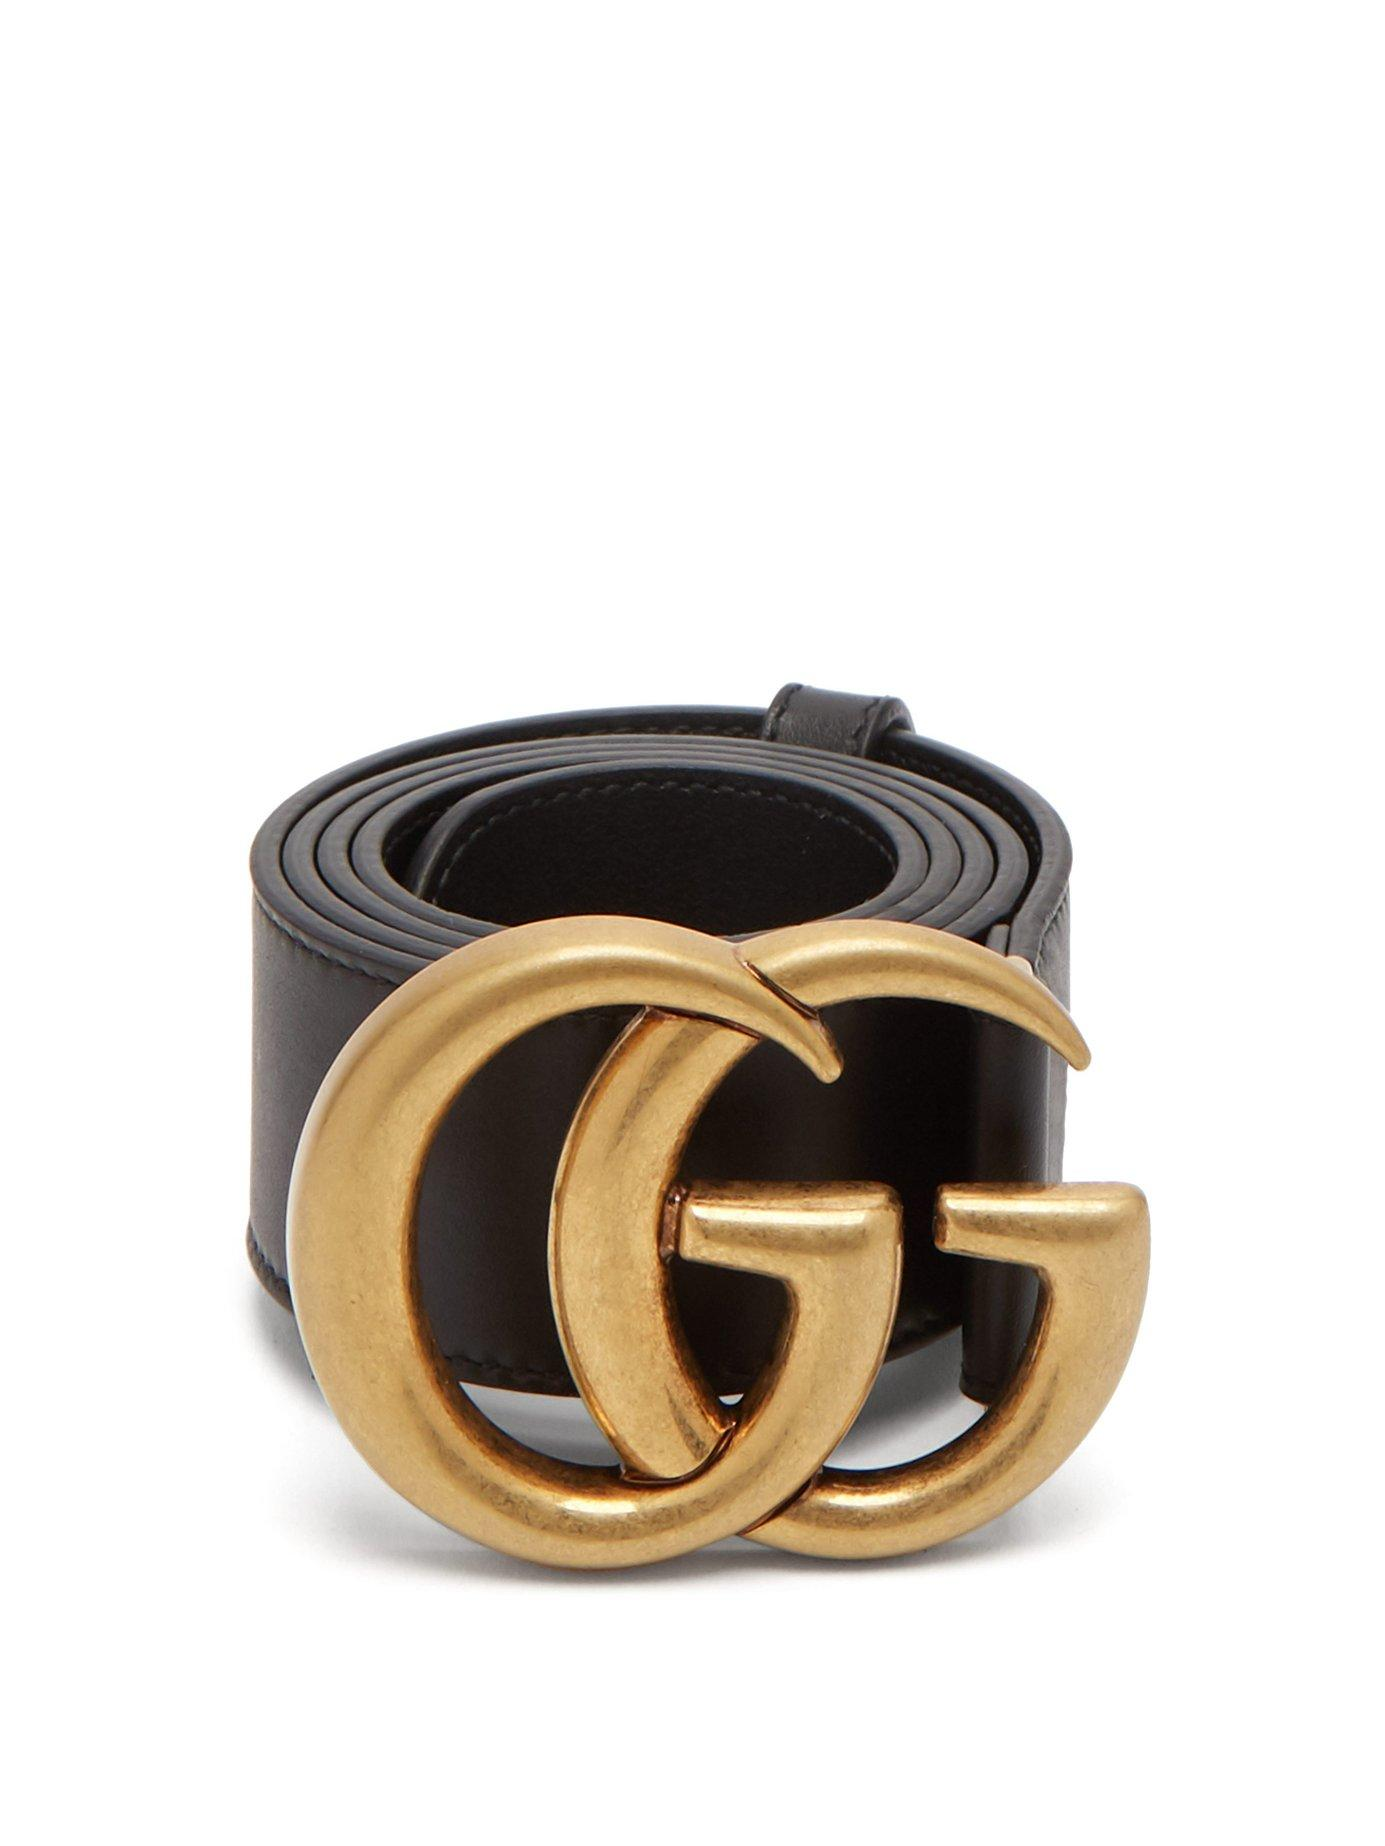 578fc88a59871 Gucci Leather Belt With Double G Buckle In 1000 Black | ModeSens